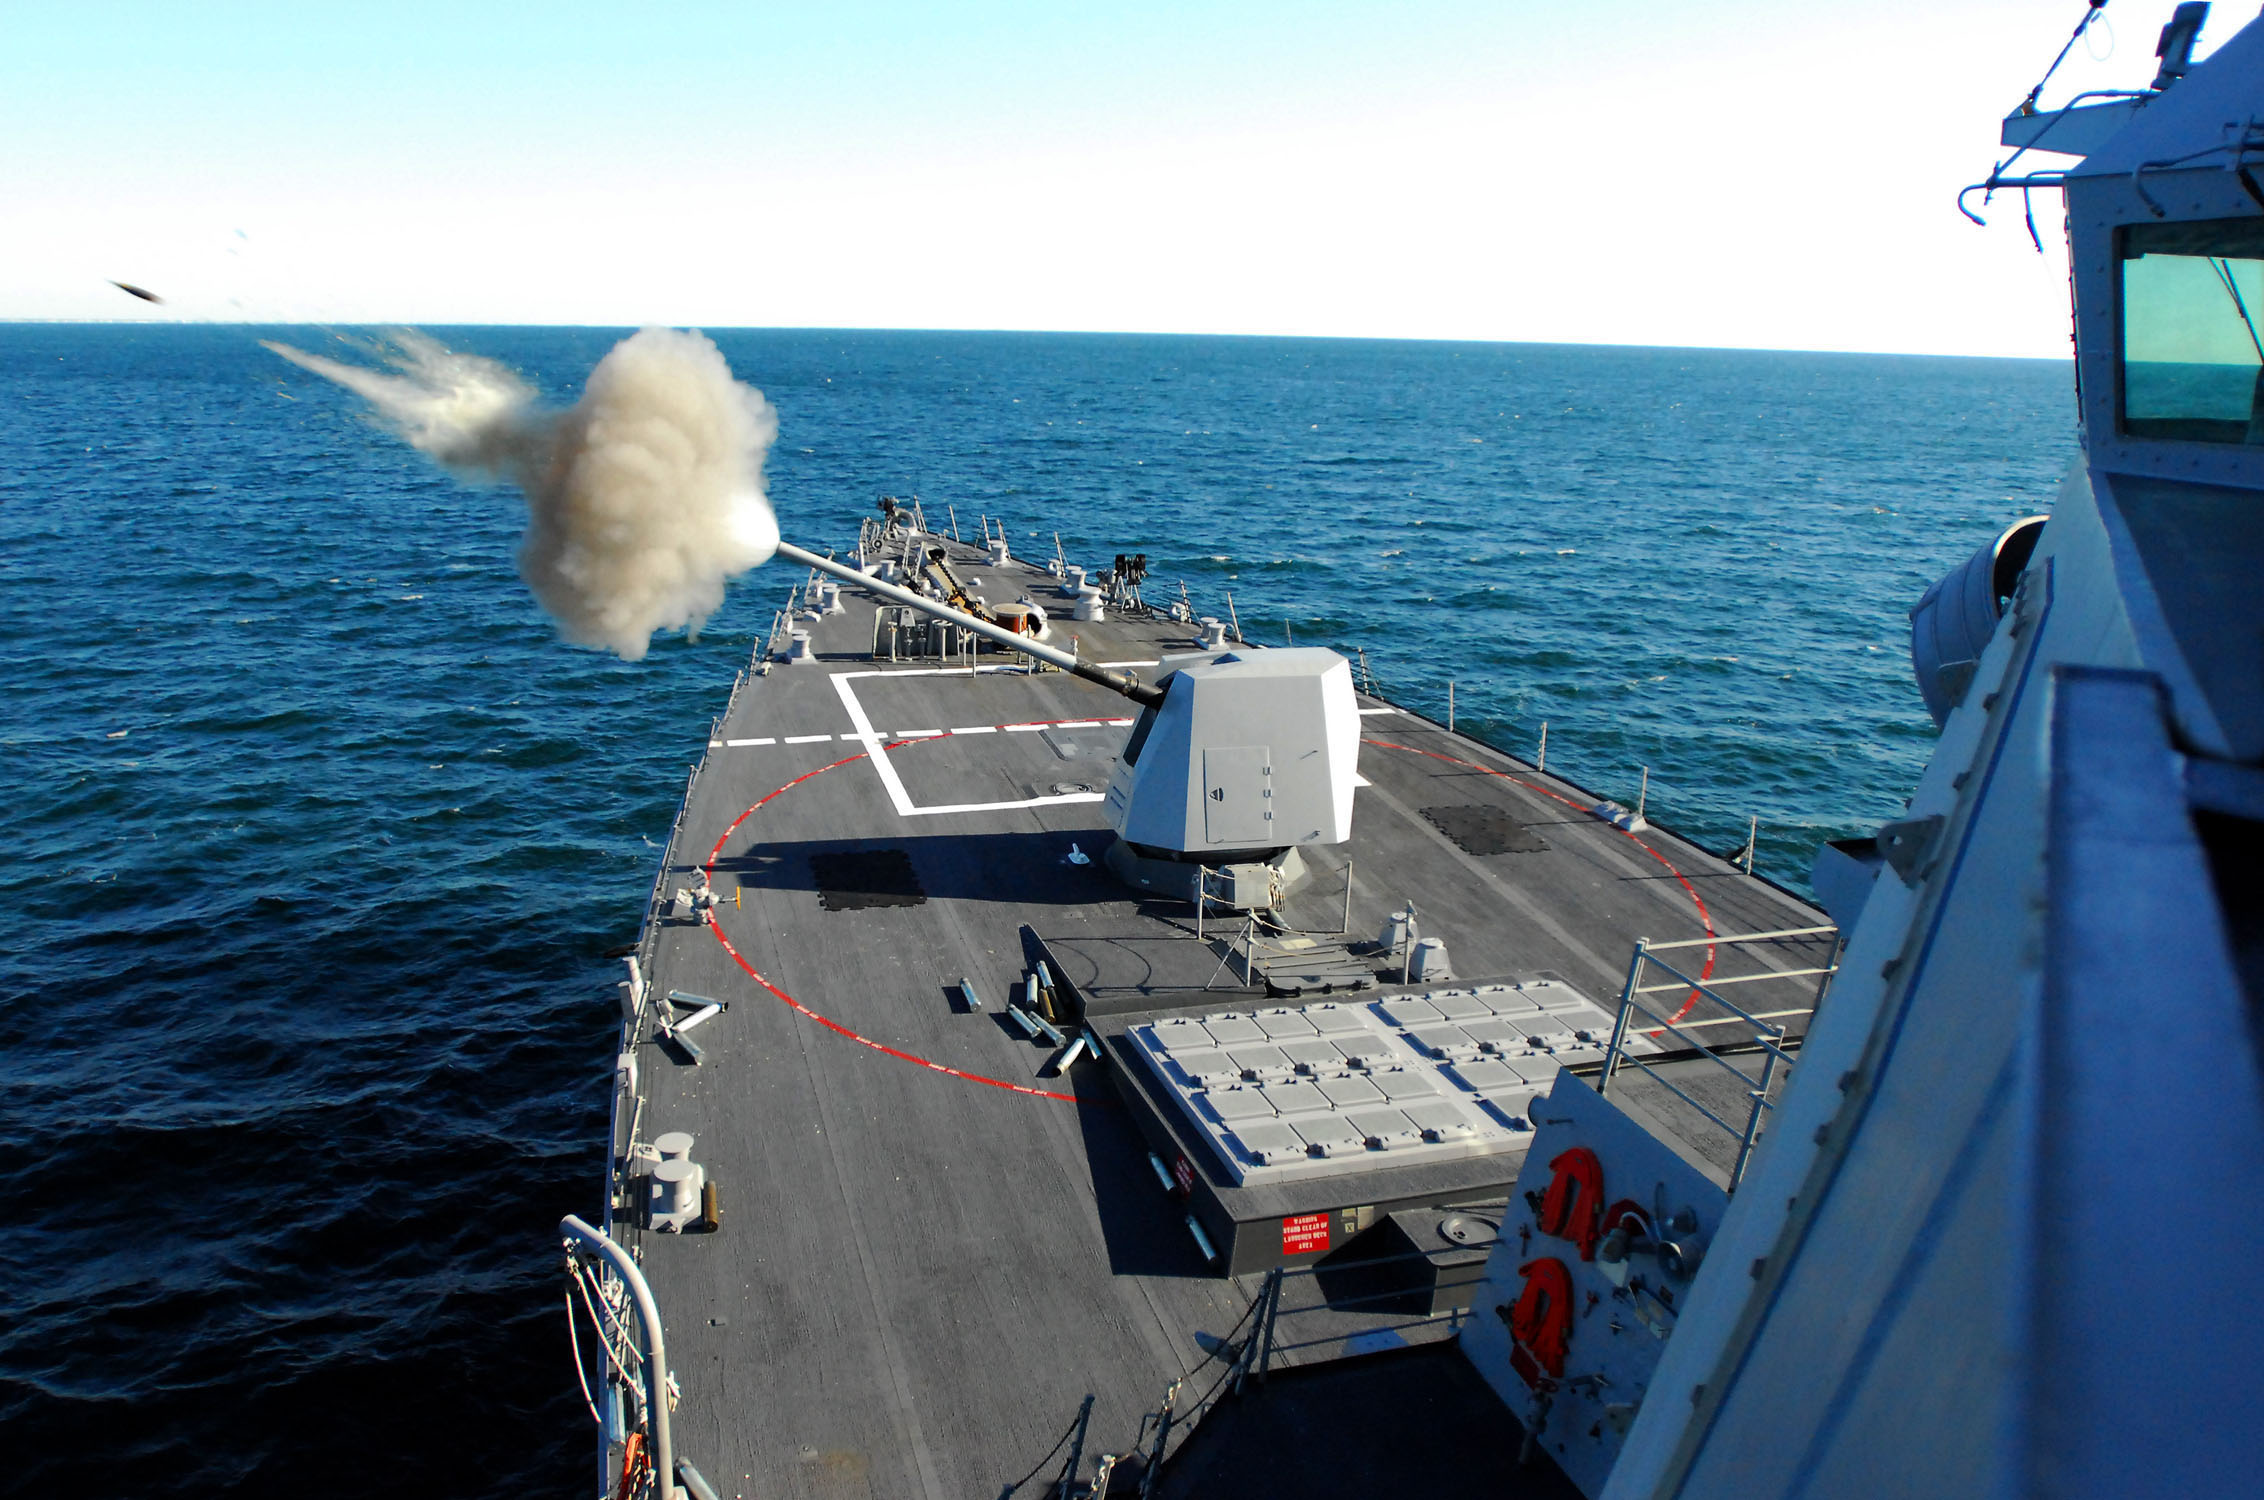 http://upload.wikimedia.org/wikipedia/commons/e/e8/US_Navy_070111-N-4515N-509_Guided_missile_destroyer_USS_Forest_Sherman_(DDG_98)_test_fires_its_five-inch_gun_on_the_bow_of_the_ship_during_training.jpg